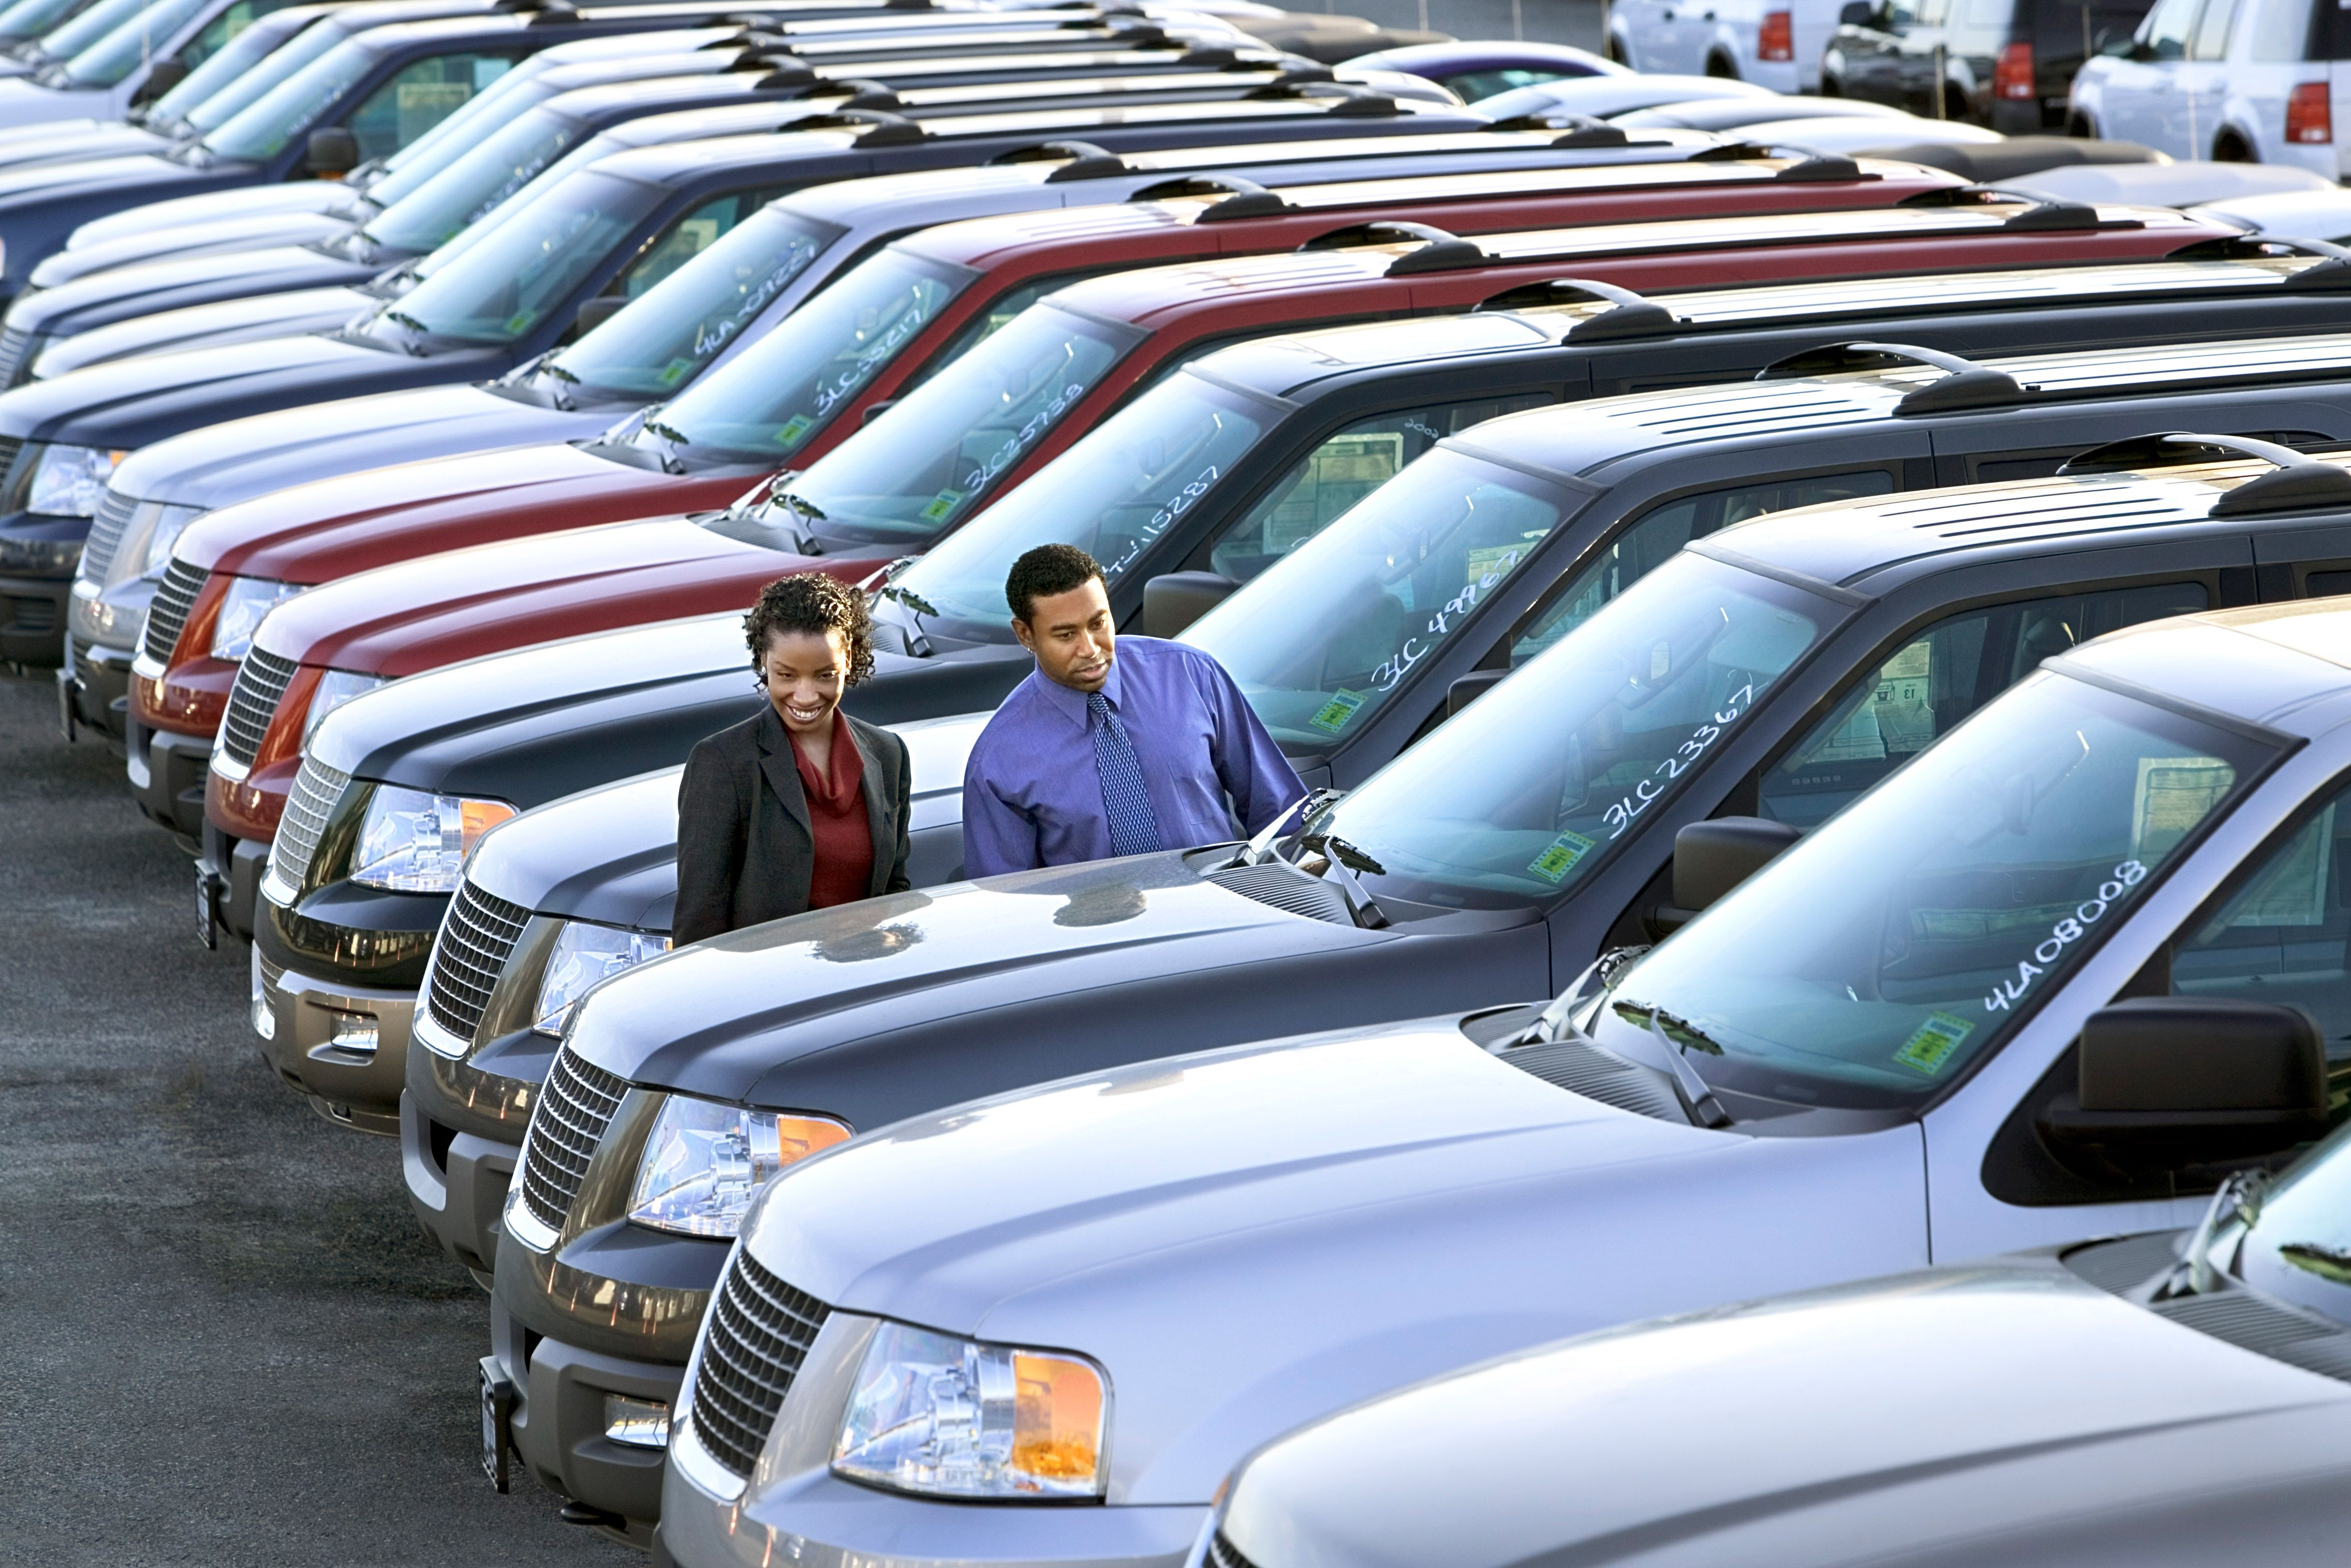 Car Dealerships In Lubbock Tx >> Used Car Dealership Checklist What To Look For Lubbock Tx